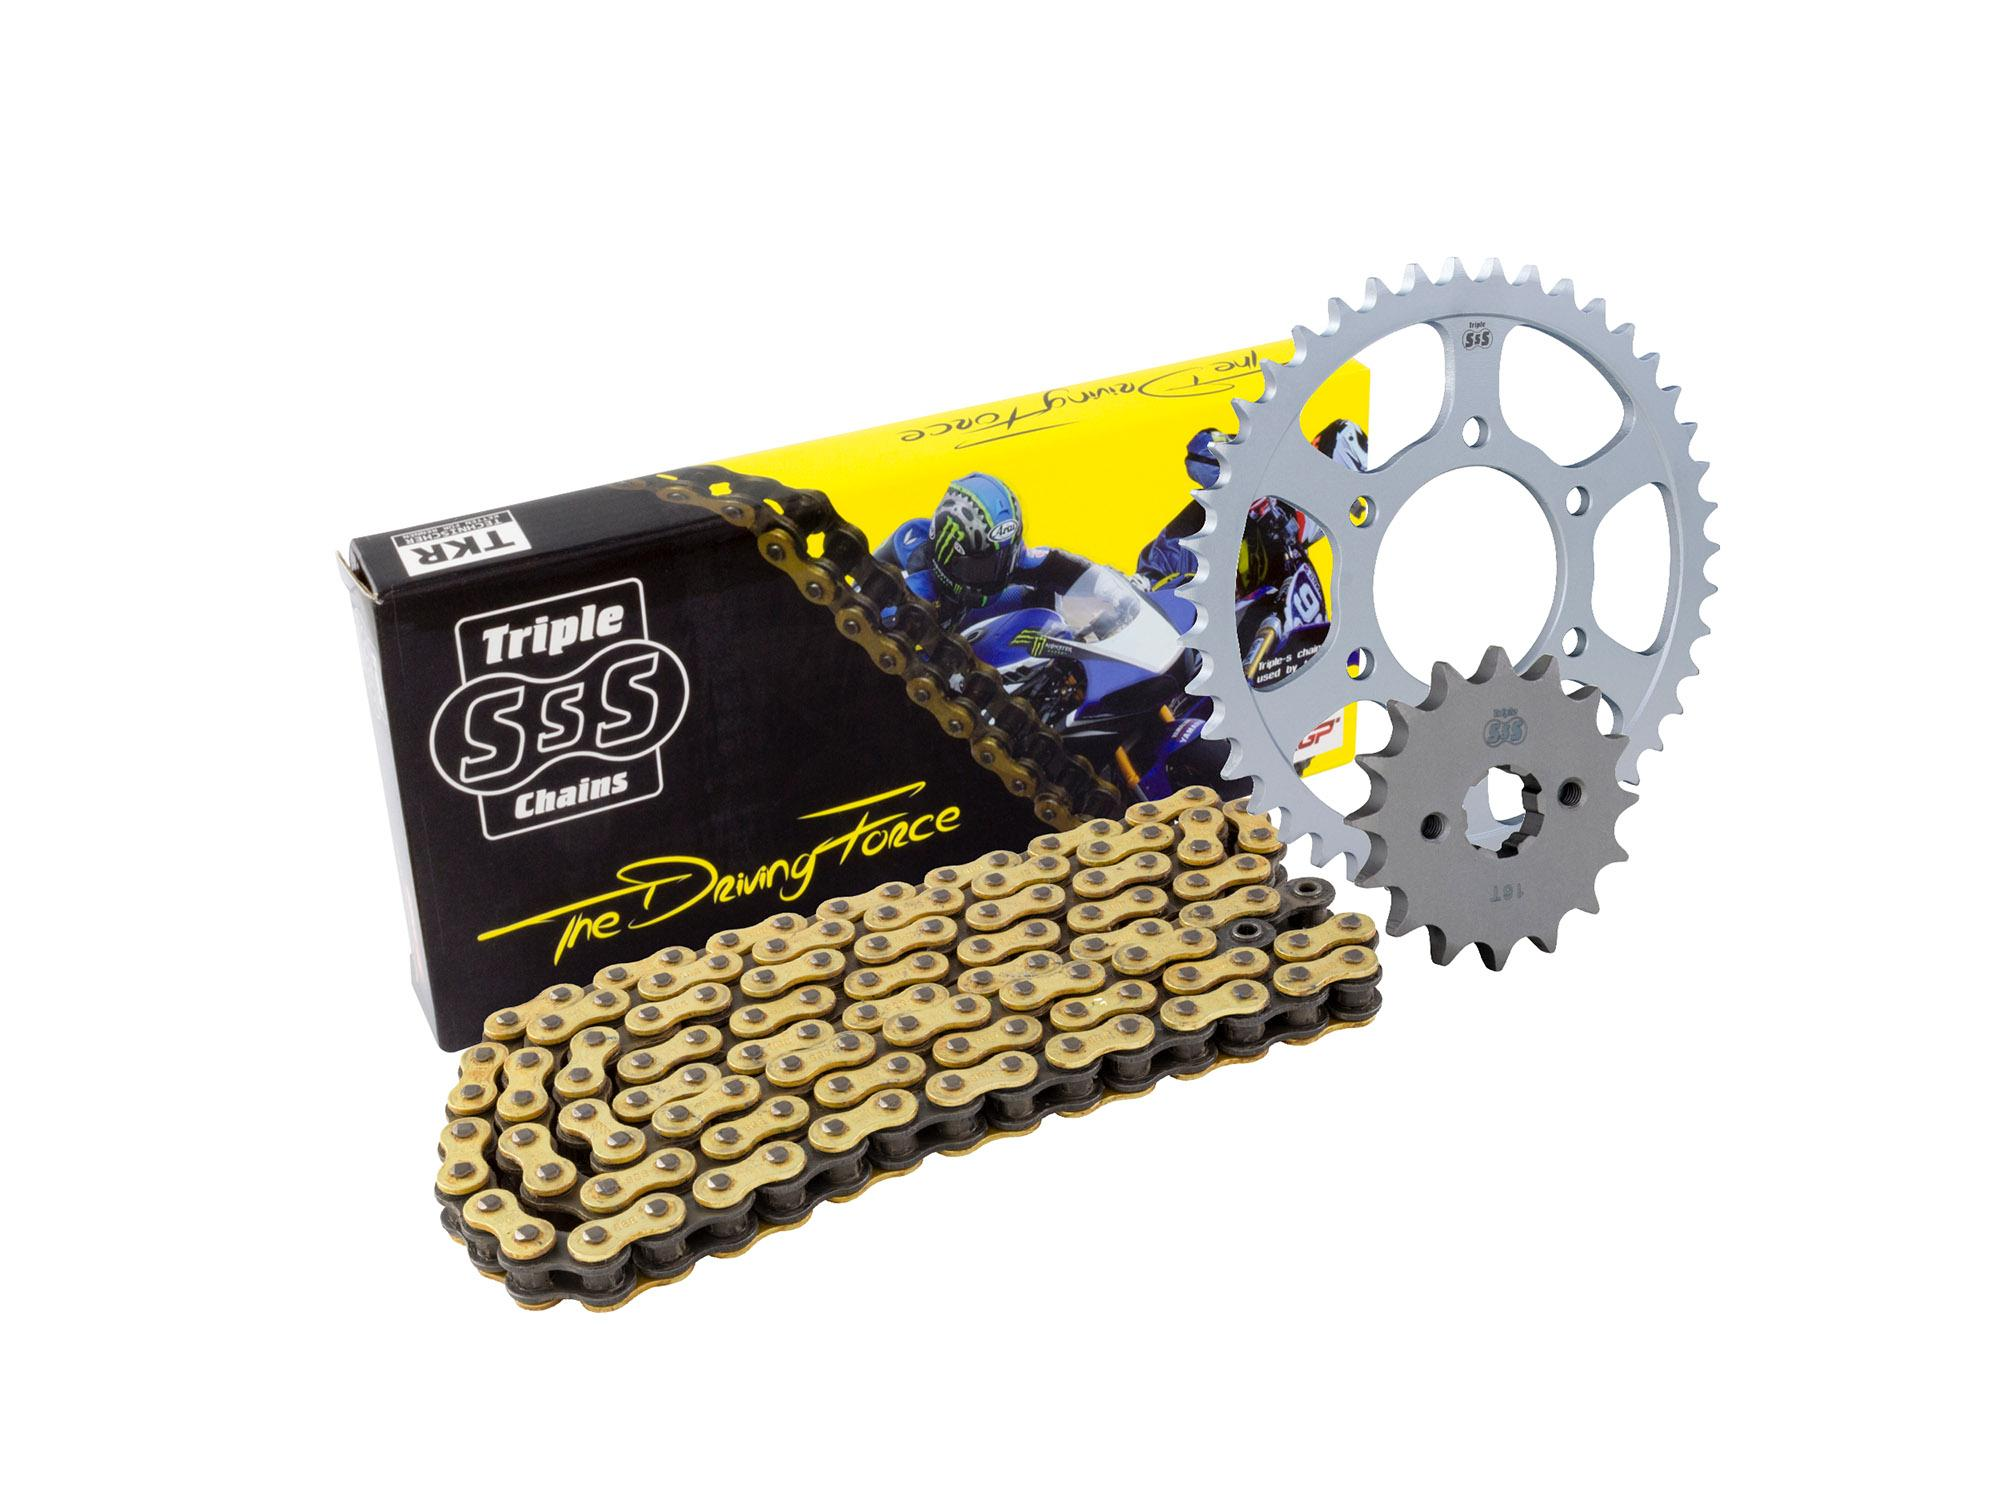 Kawasaki ZX-9R F1-F2 Ninja 02-03 Chain & Sprocket Kit: 16T Front, 41T Rear, HD O-Ring Gold Chain 525H 110 Link